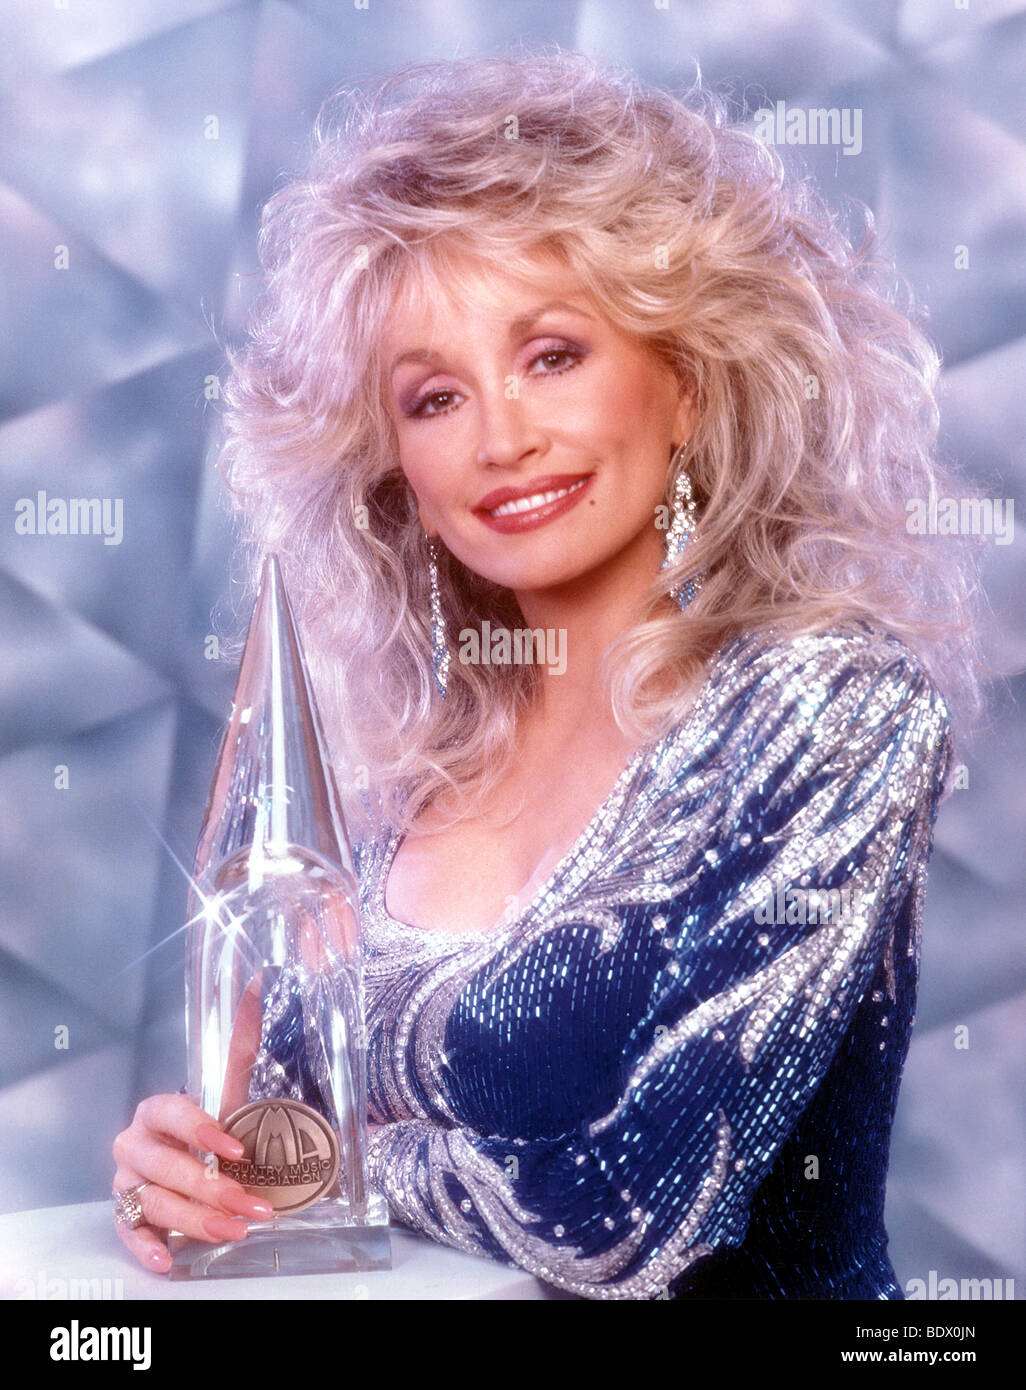 DOLLY PARTON - NOUS JOINDRE Pays et musicien occidental Photo Stock